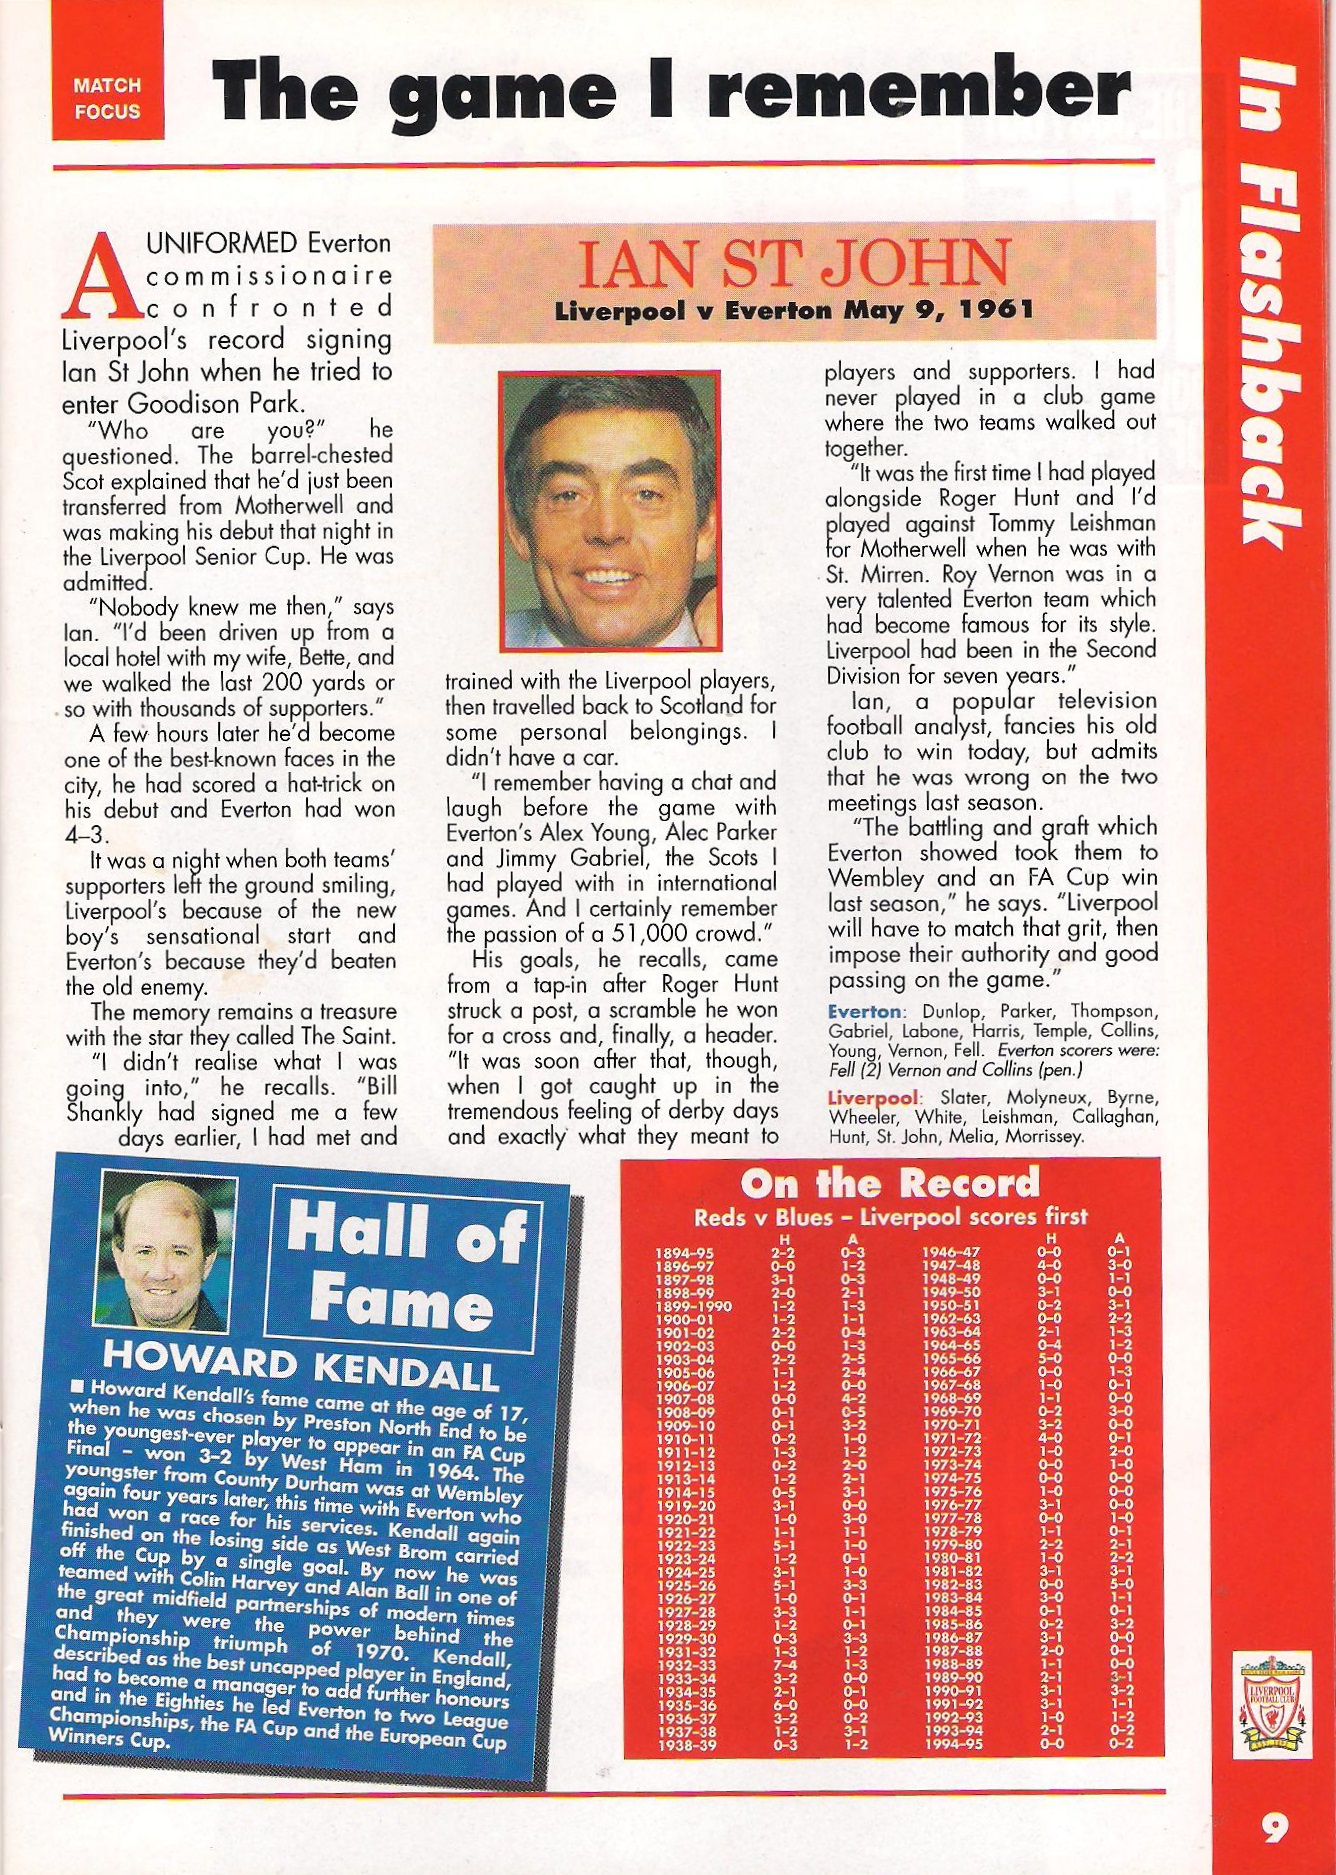 St John on his memorable Merseyside debut hat-trick in 1961